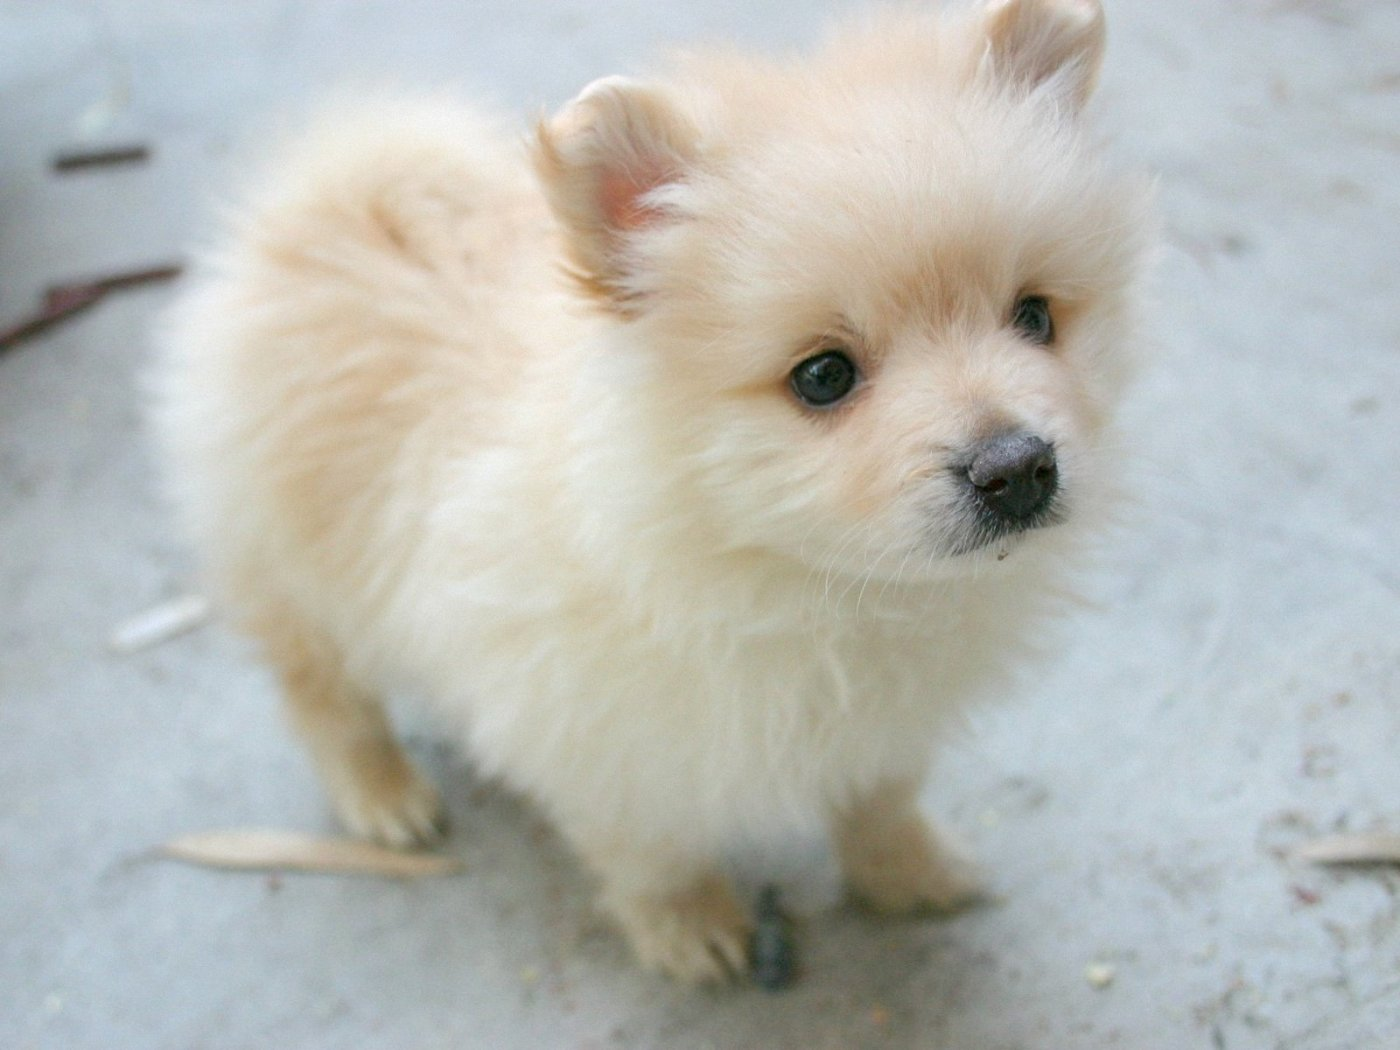 Cute Pomeranian dog wallpaper